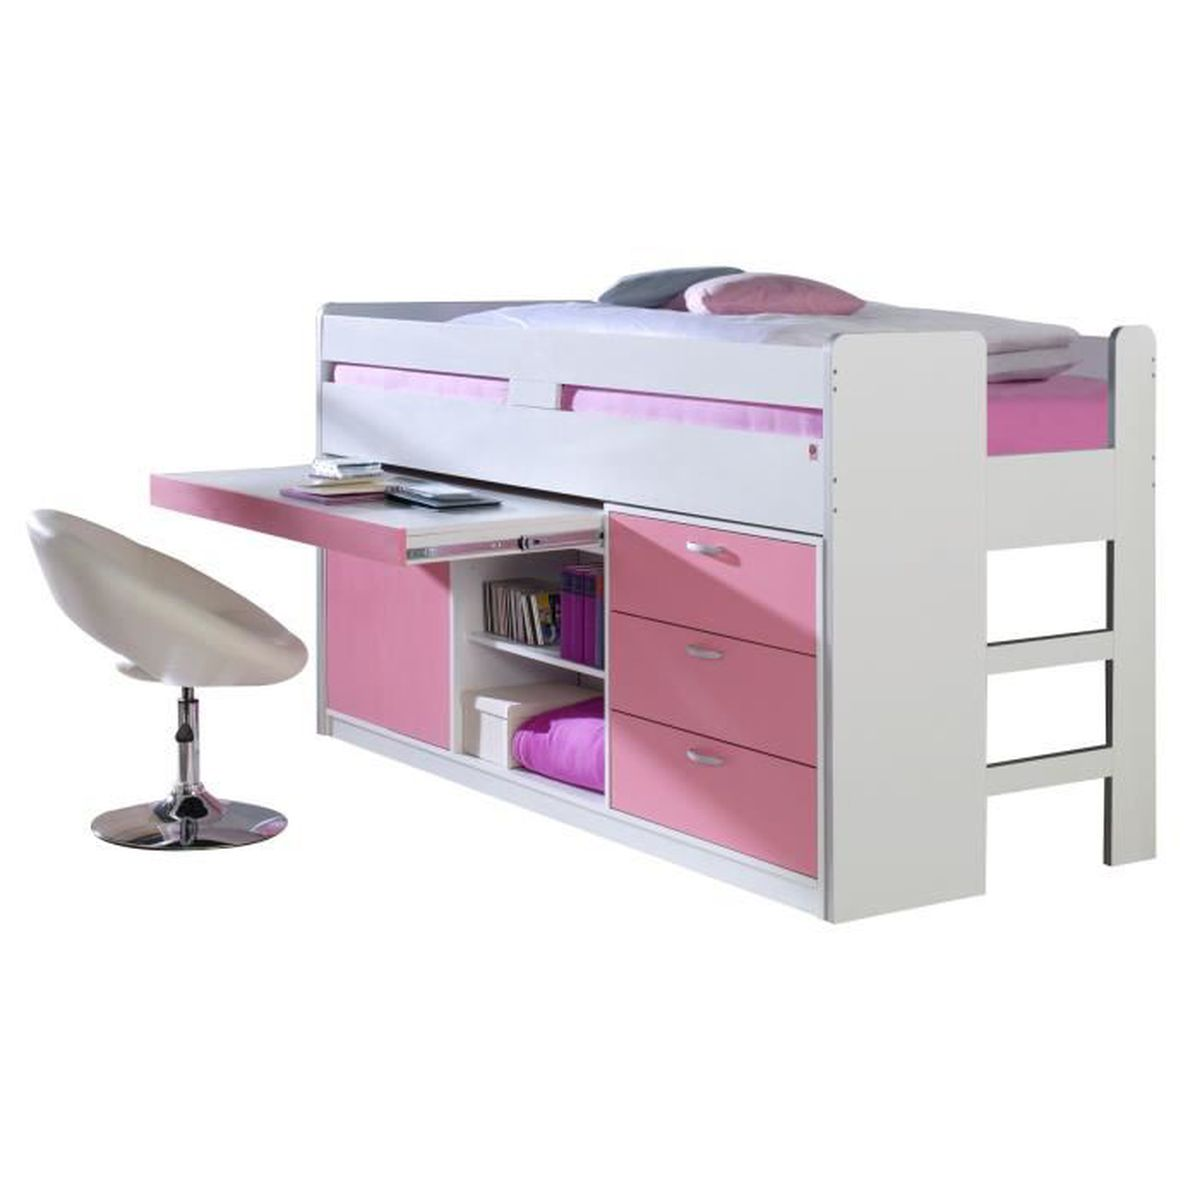 lit mi hauteur combin 90x200 cm avec 3 tiroirs 1 commode et un bureau coloris rose et blanc. Black Bedroom Furniture Sets. Home Design Ideas